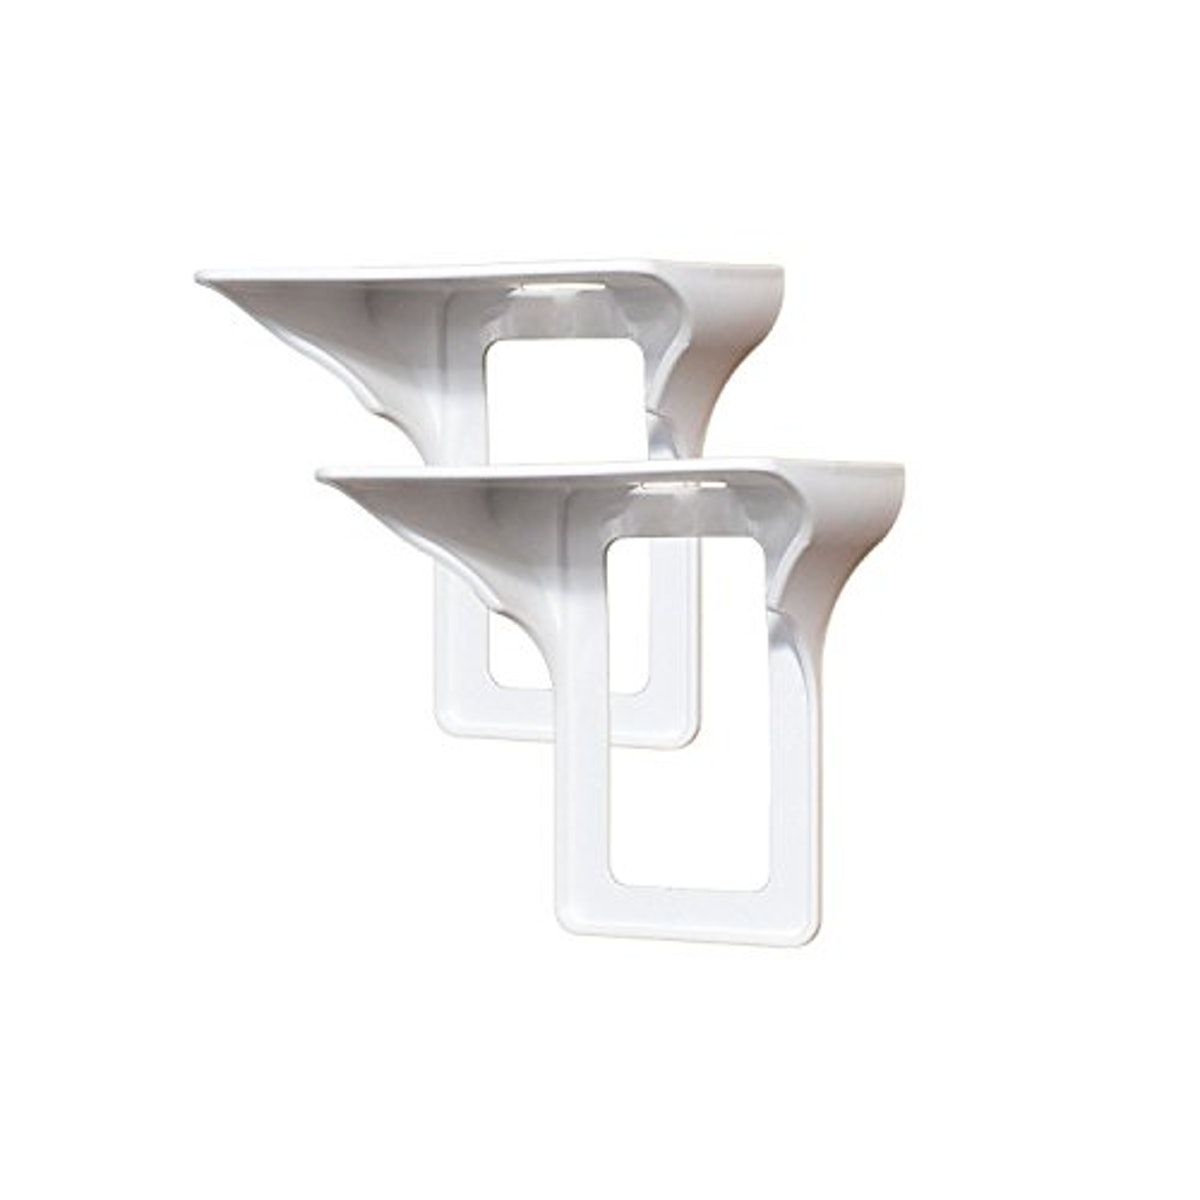 Storage Theory Power Perch Ultimate Outlet Shelf